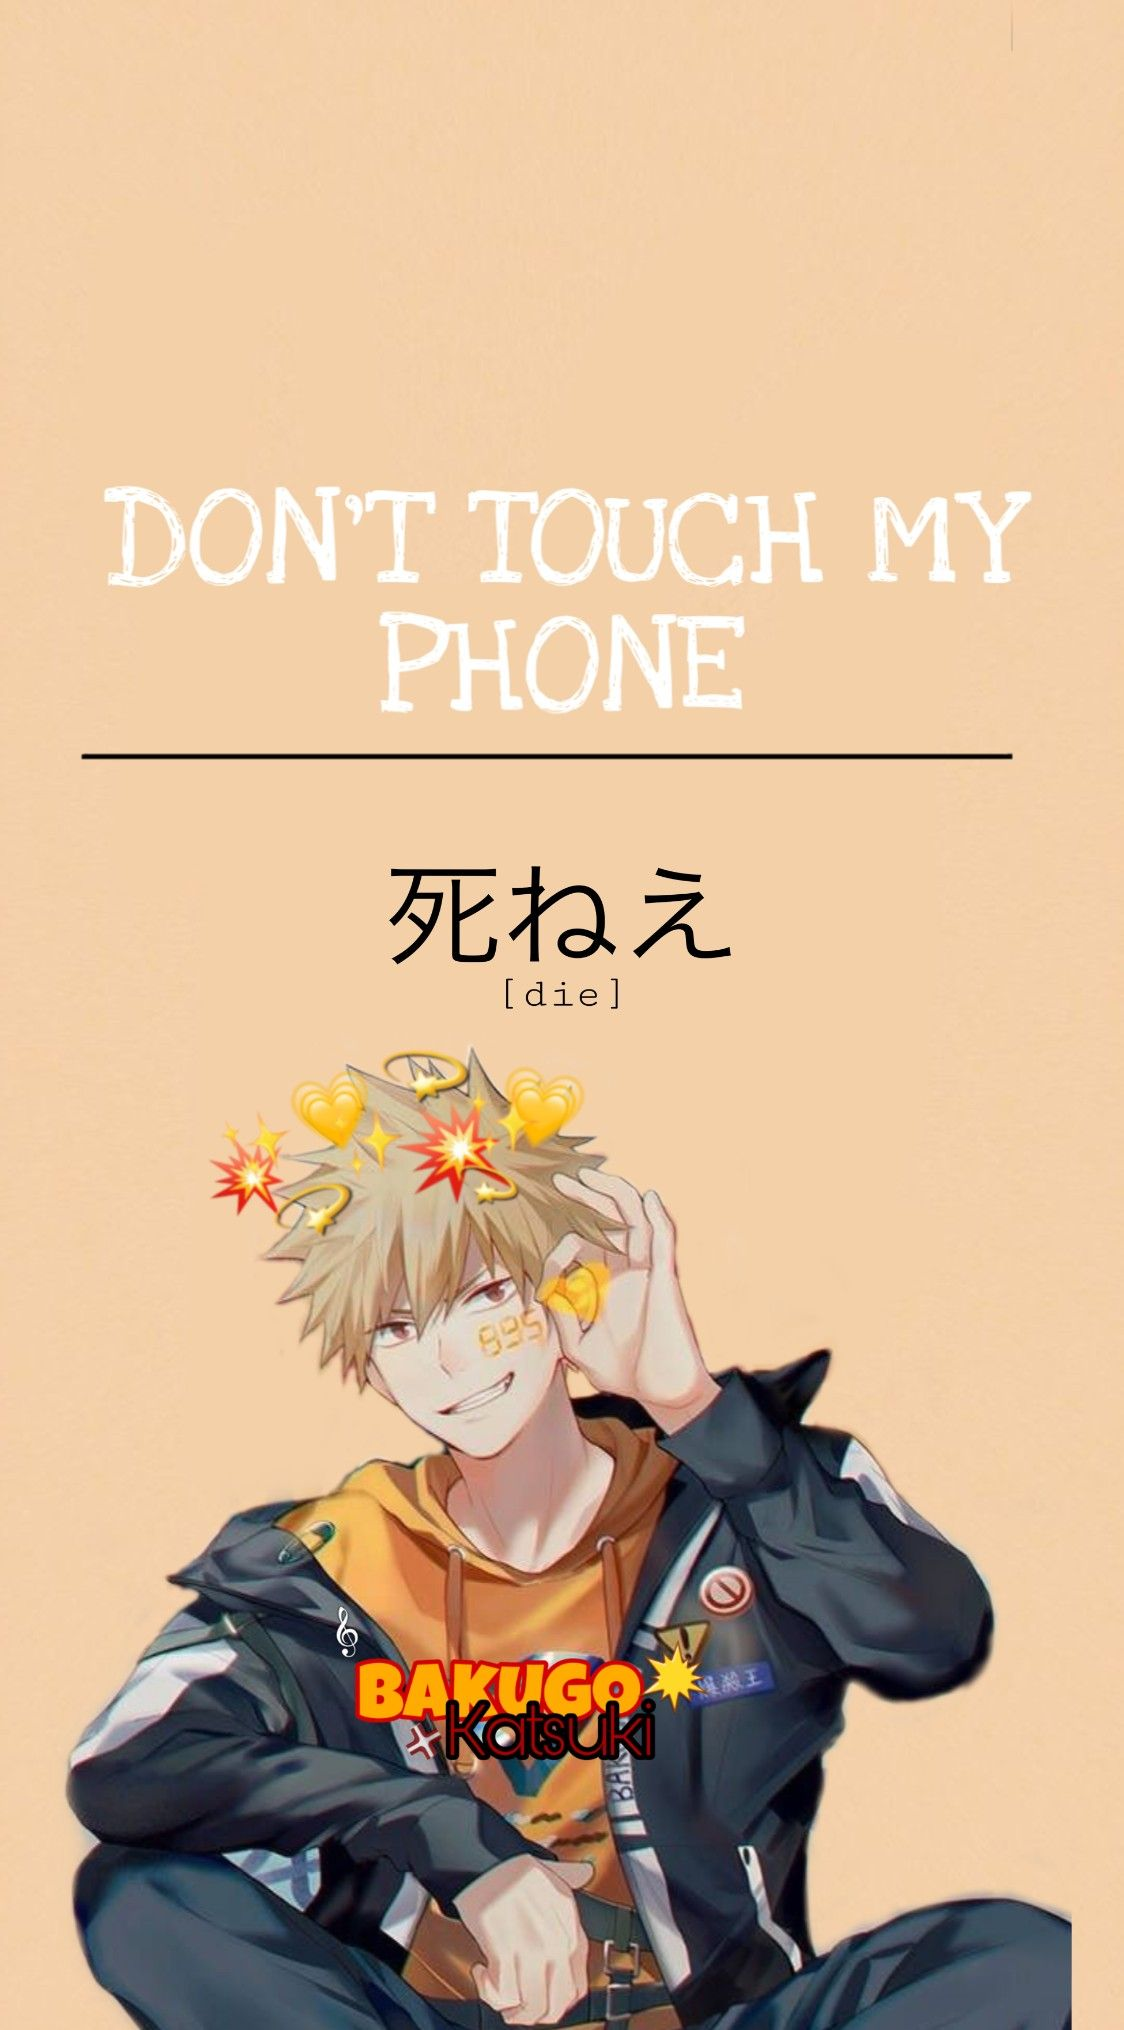 Bakugou Katsuki Wallpaper In 2020 Hero Wallpaper Anime Boyfriend Cute Anime Character